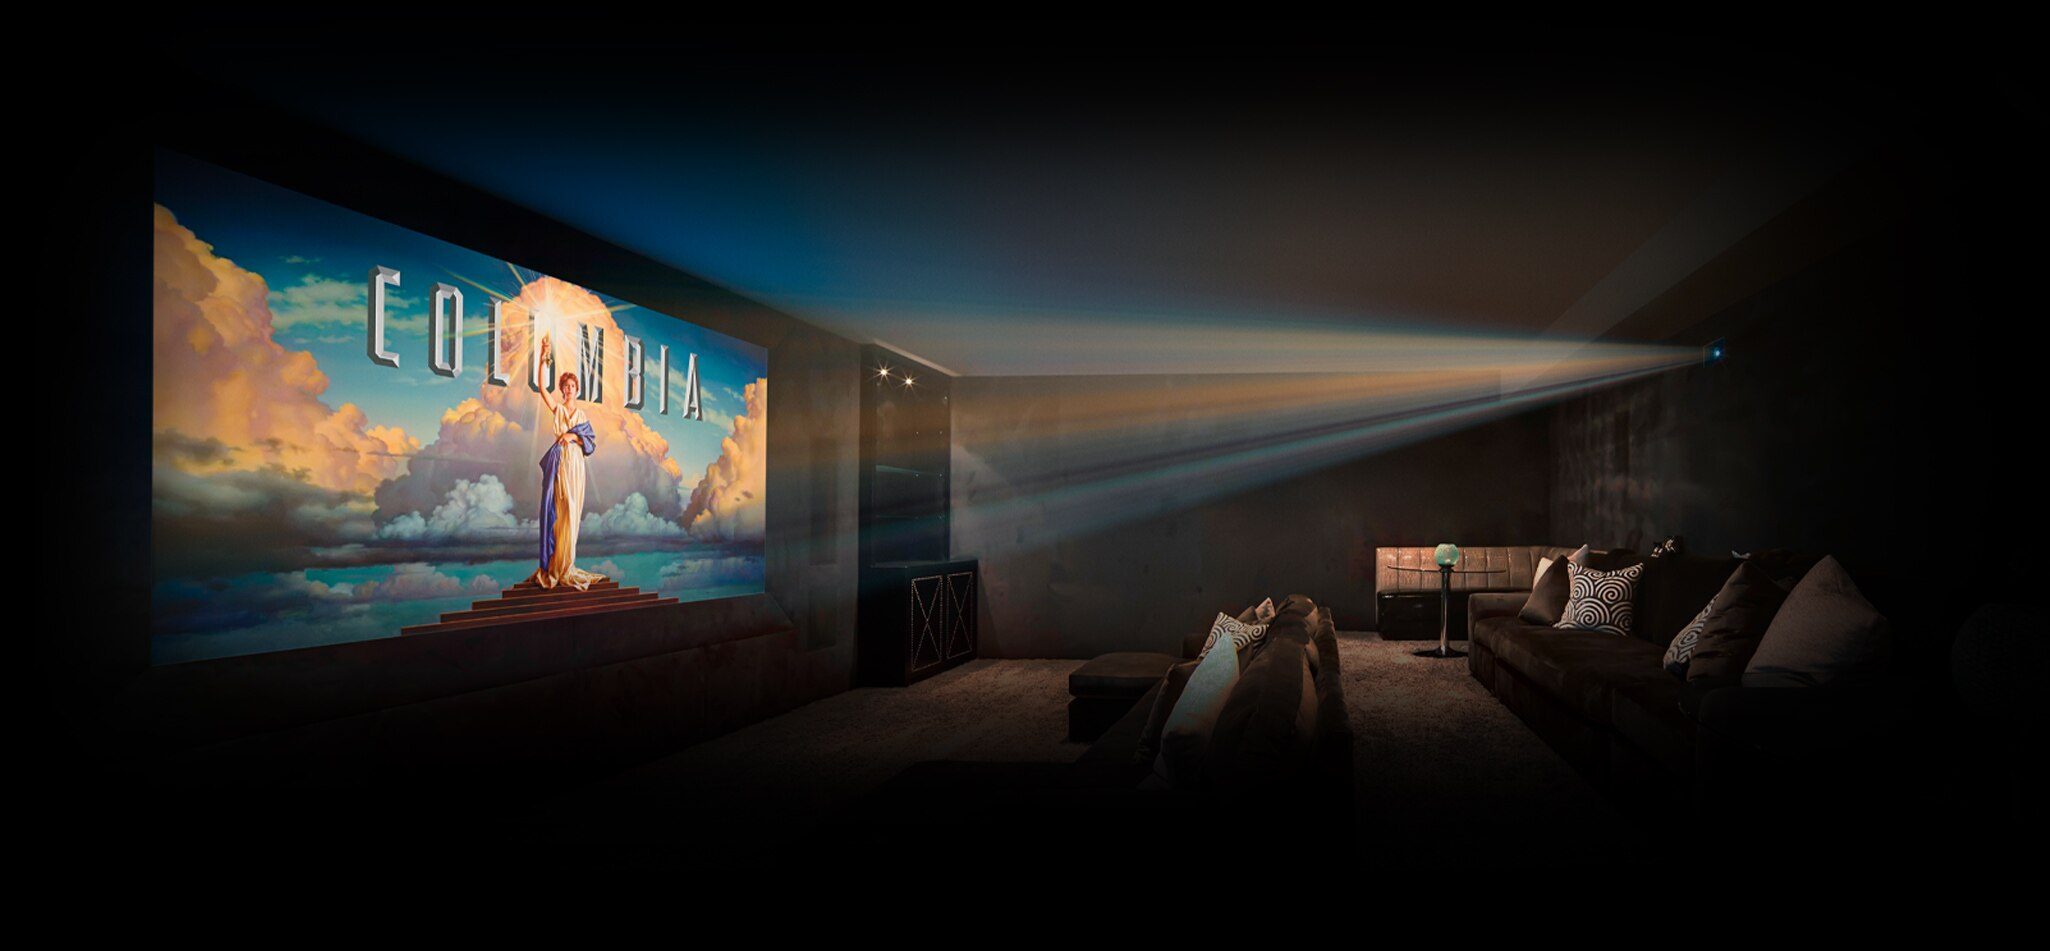 Image showing a home cinema room with a projector displaying a Columbia Pictures logo on the screen.